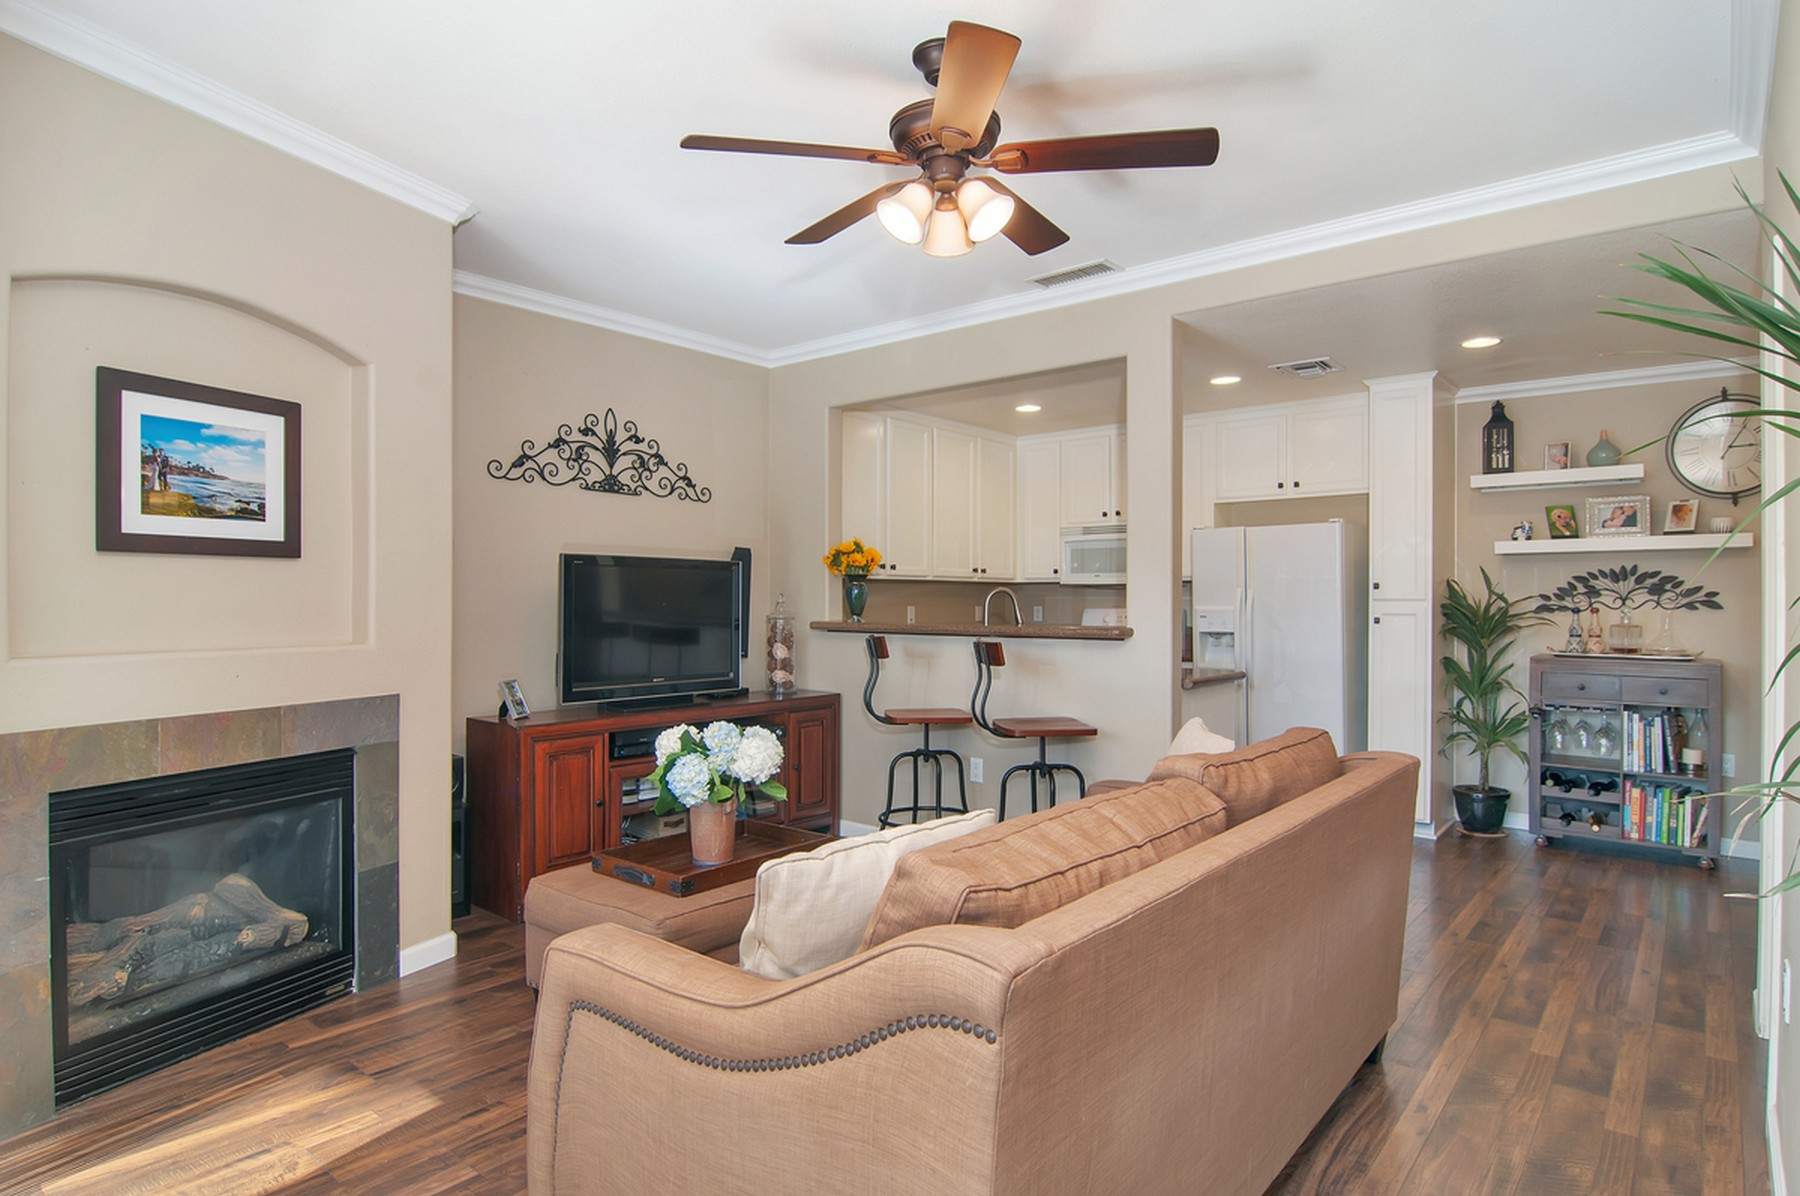 Single Family Home for Sale at 1905 Diamond Street San Diego, California, 92109 United States